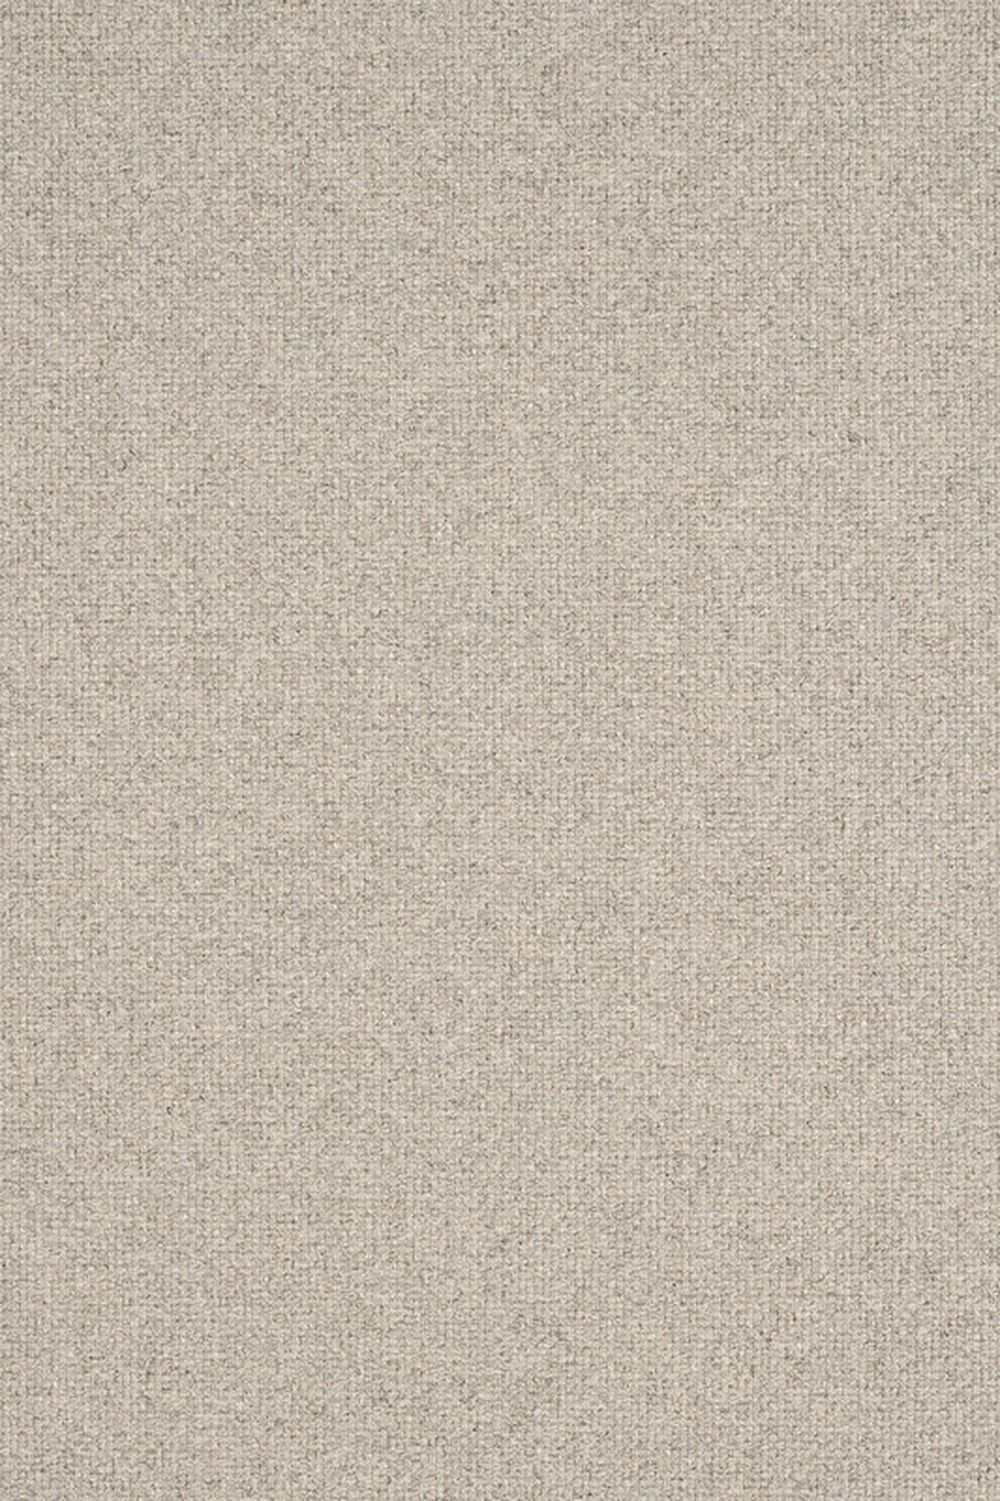 Photo of the fabric Como Linen swatch by Mokum. Use for Upholstery Heavy Duty, Accessory. Style of Plain, Texture